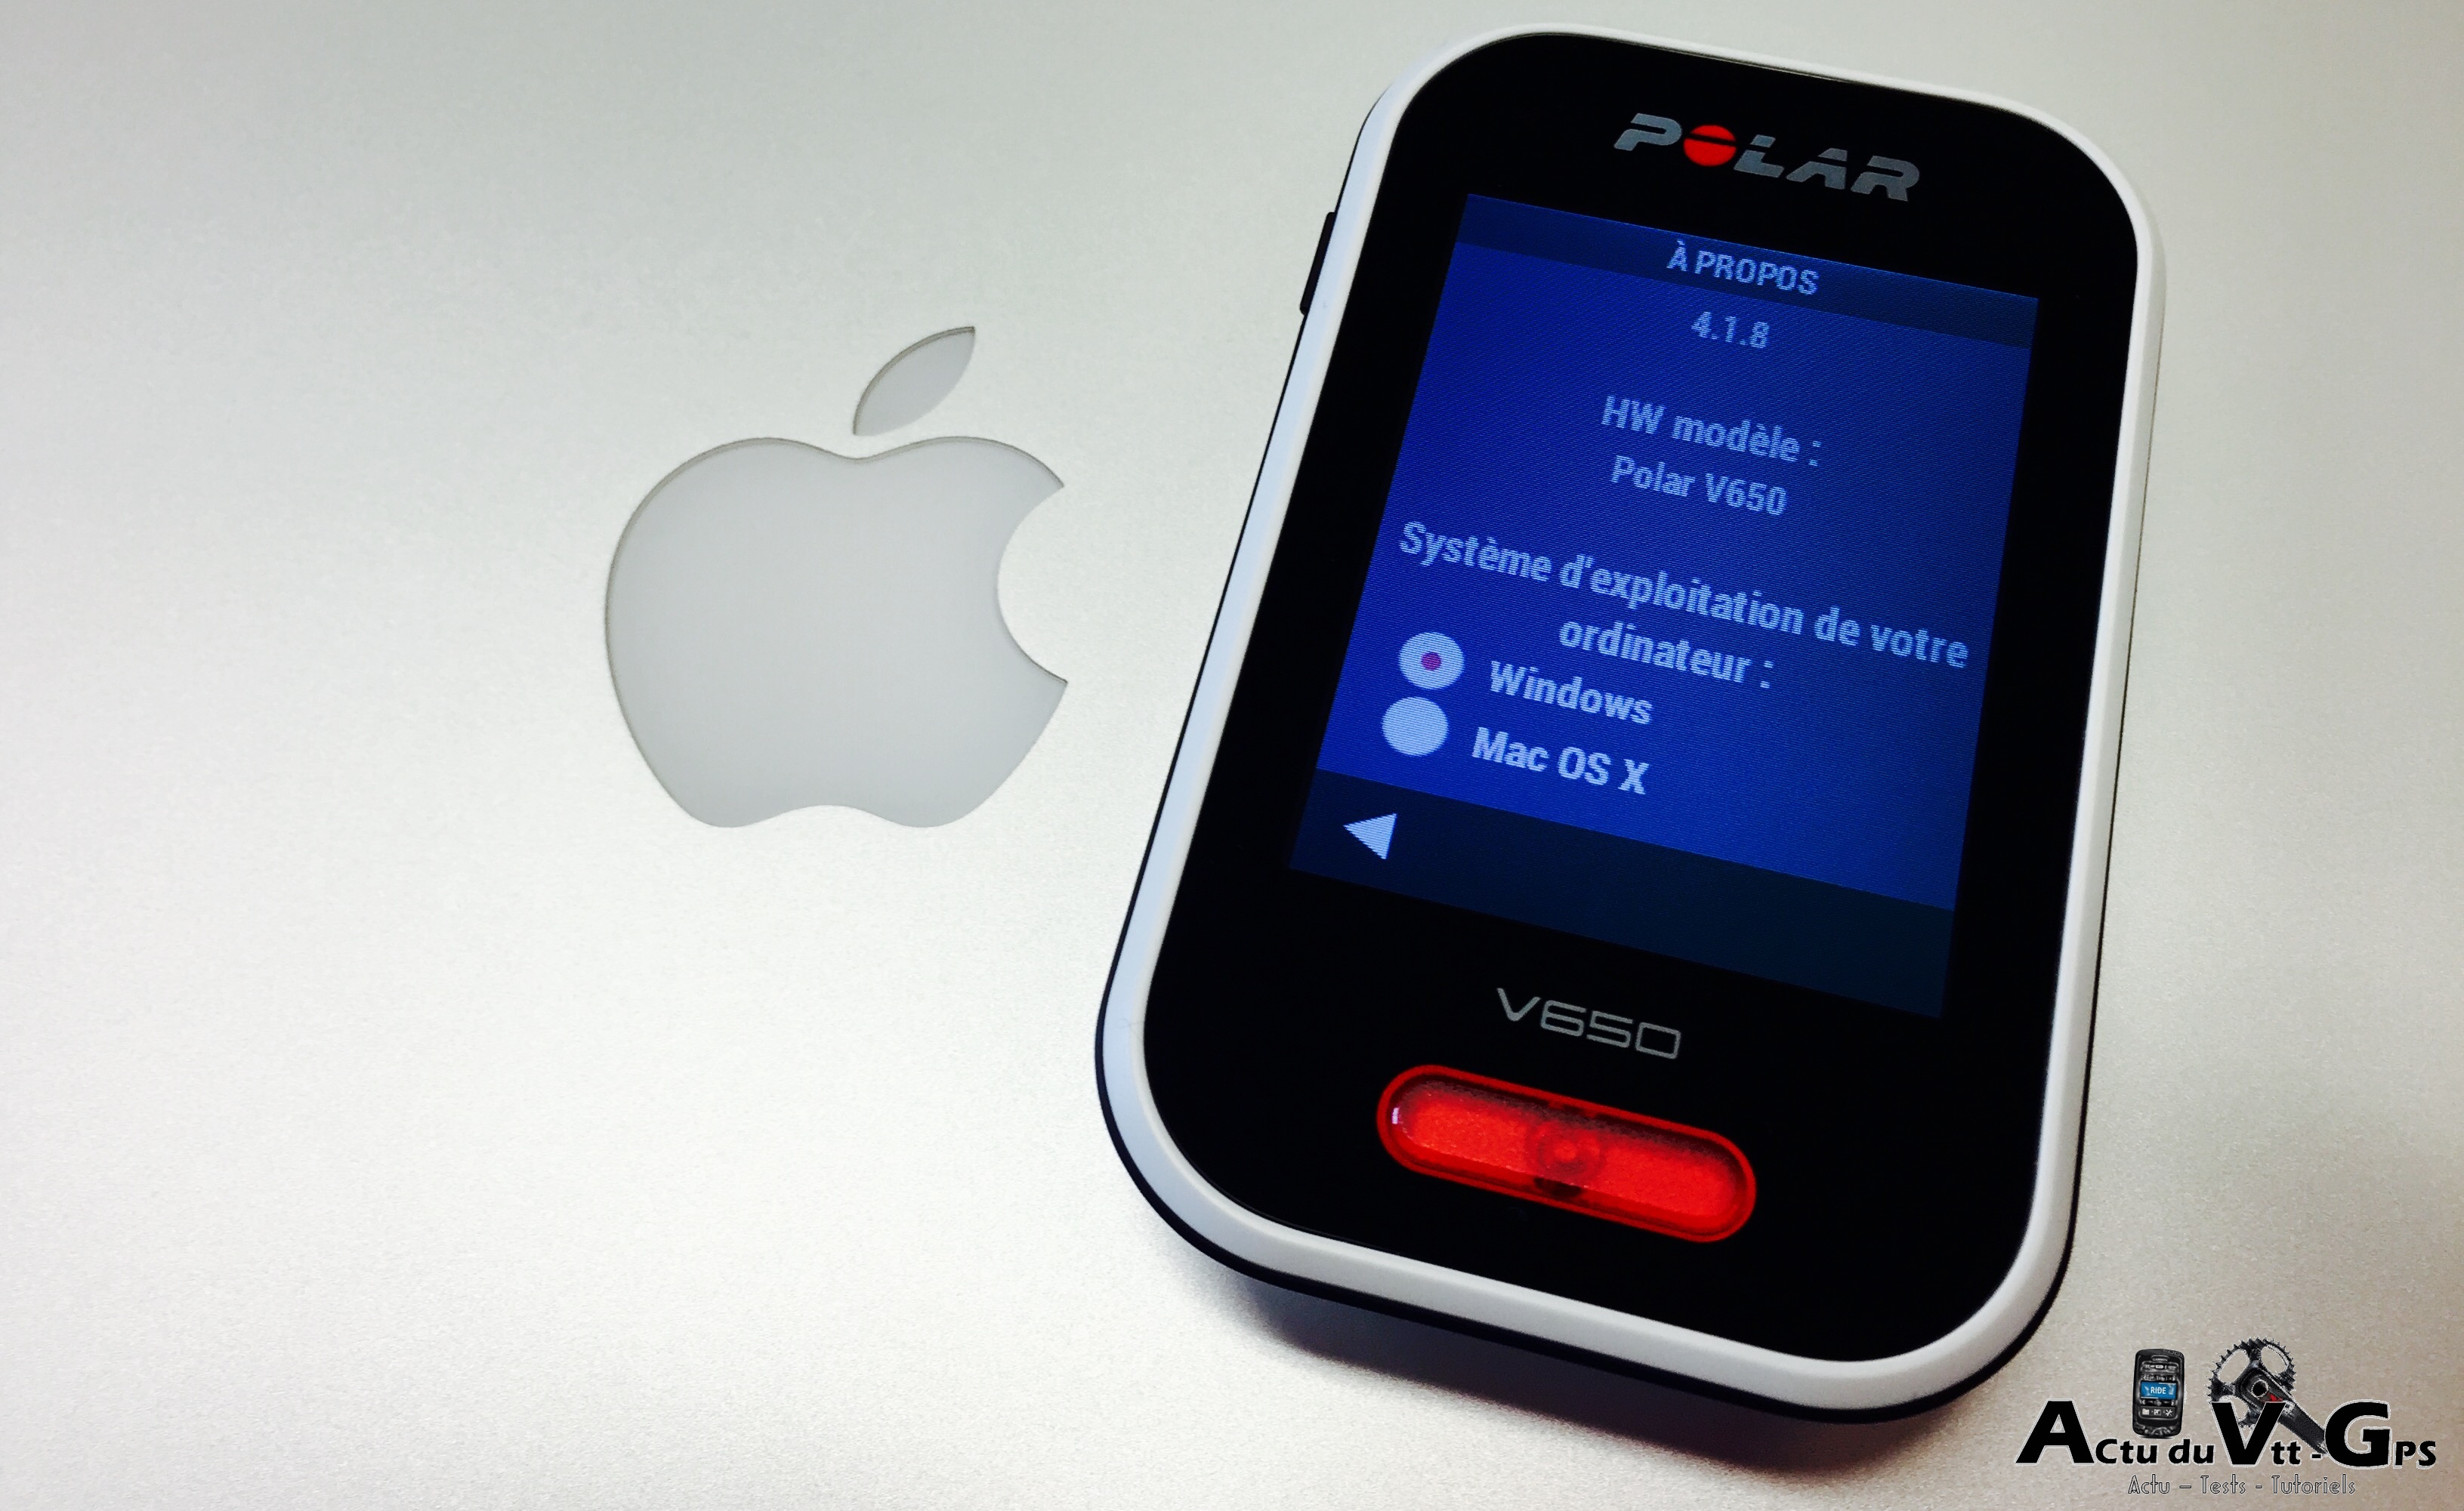 LA COMMUNICATION MAC ET GPS POLAR V650 EST OPERATIONNELLE